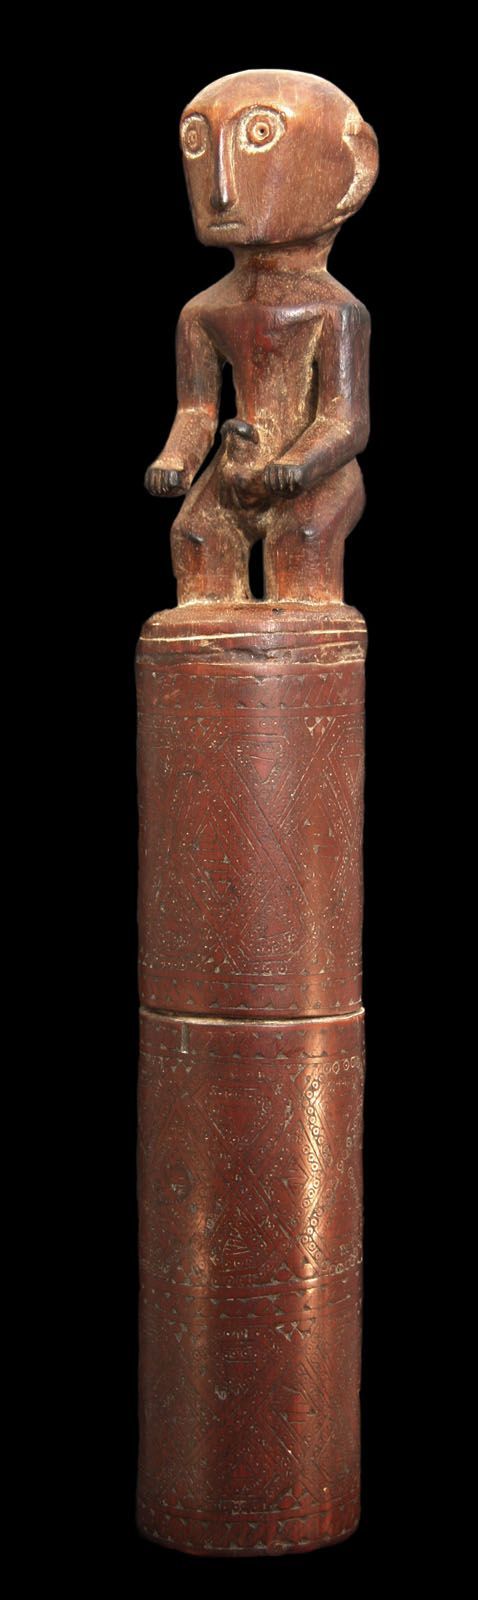 "Carved Wood And Bamboo Lime Container. Lime paste is one of the three ingredients for making betel quid, the other two being a leaf from the vine of the piper betel pepper plant, and thin slices of the areca-nut. Chewing the mixture of areca nut and betel leaf is a tradition, custom or ritual which dates back thousands of years from South Asia to the Pacific. Location: Indonesia | Dimensions: 9.5"" x 1.25"" x 1.5"". See more items at londoncoin.com"